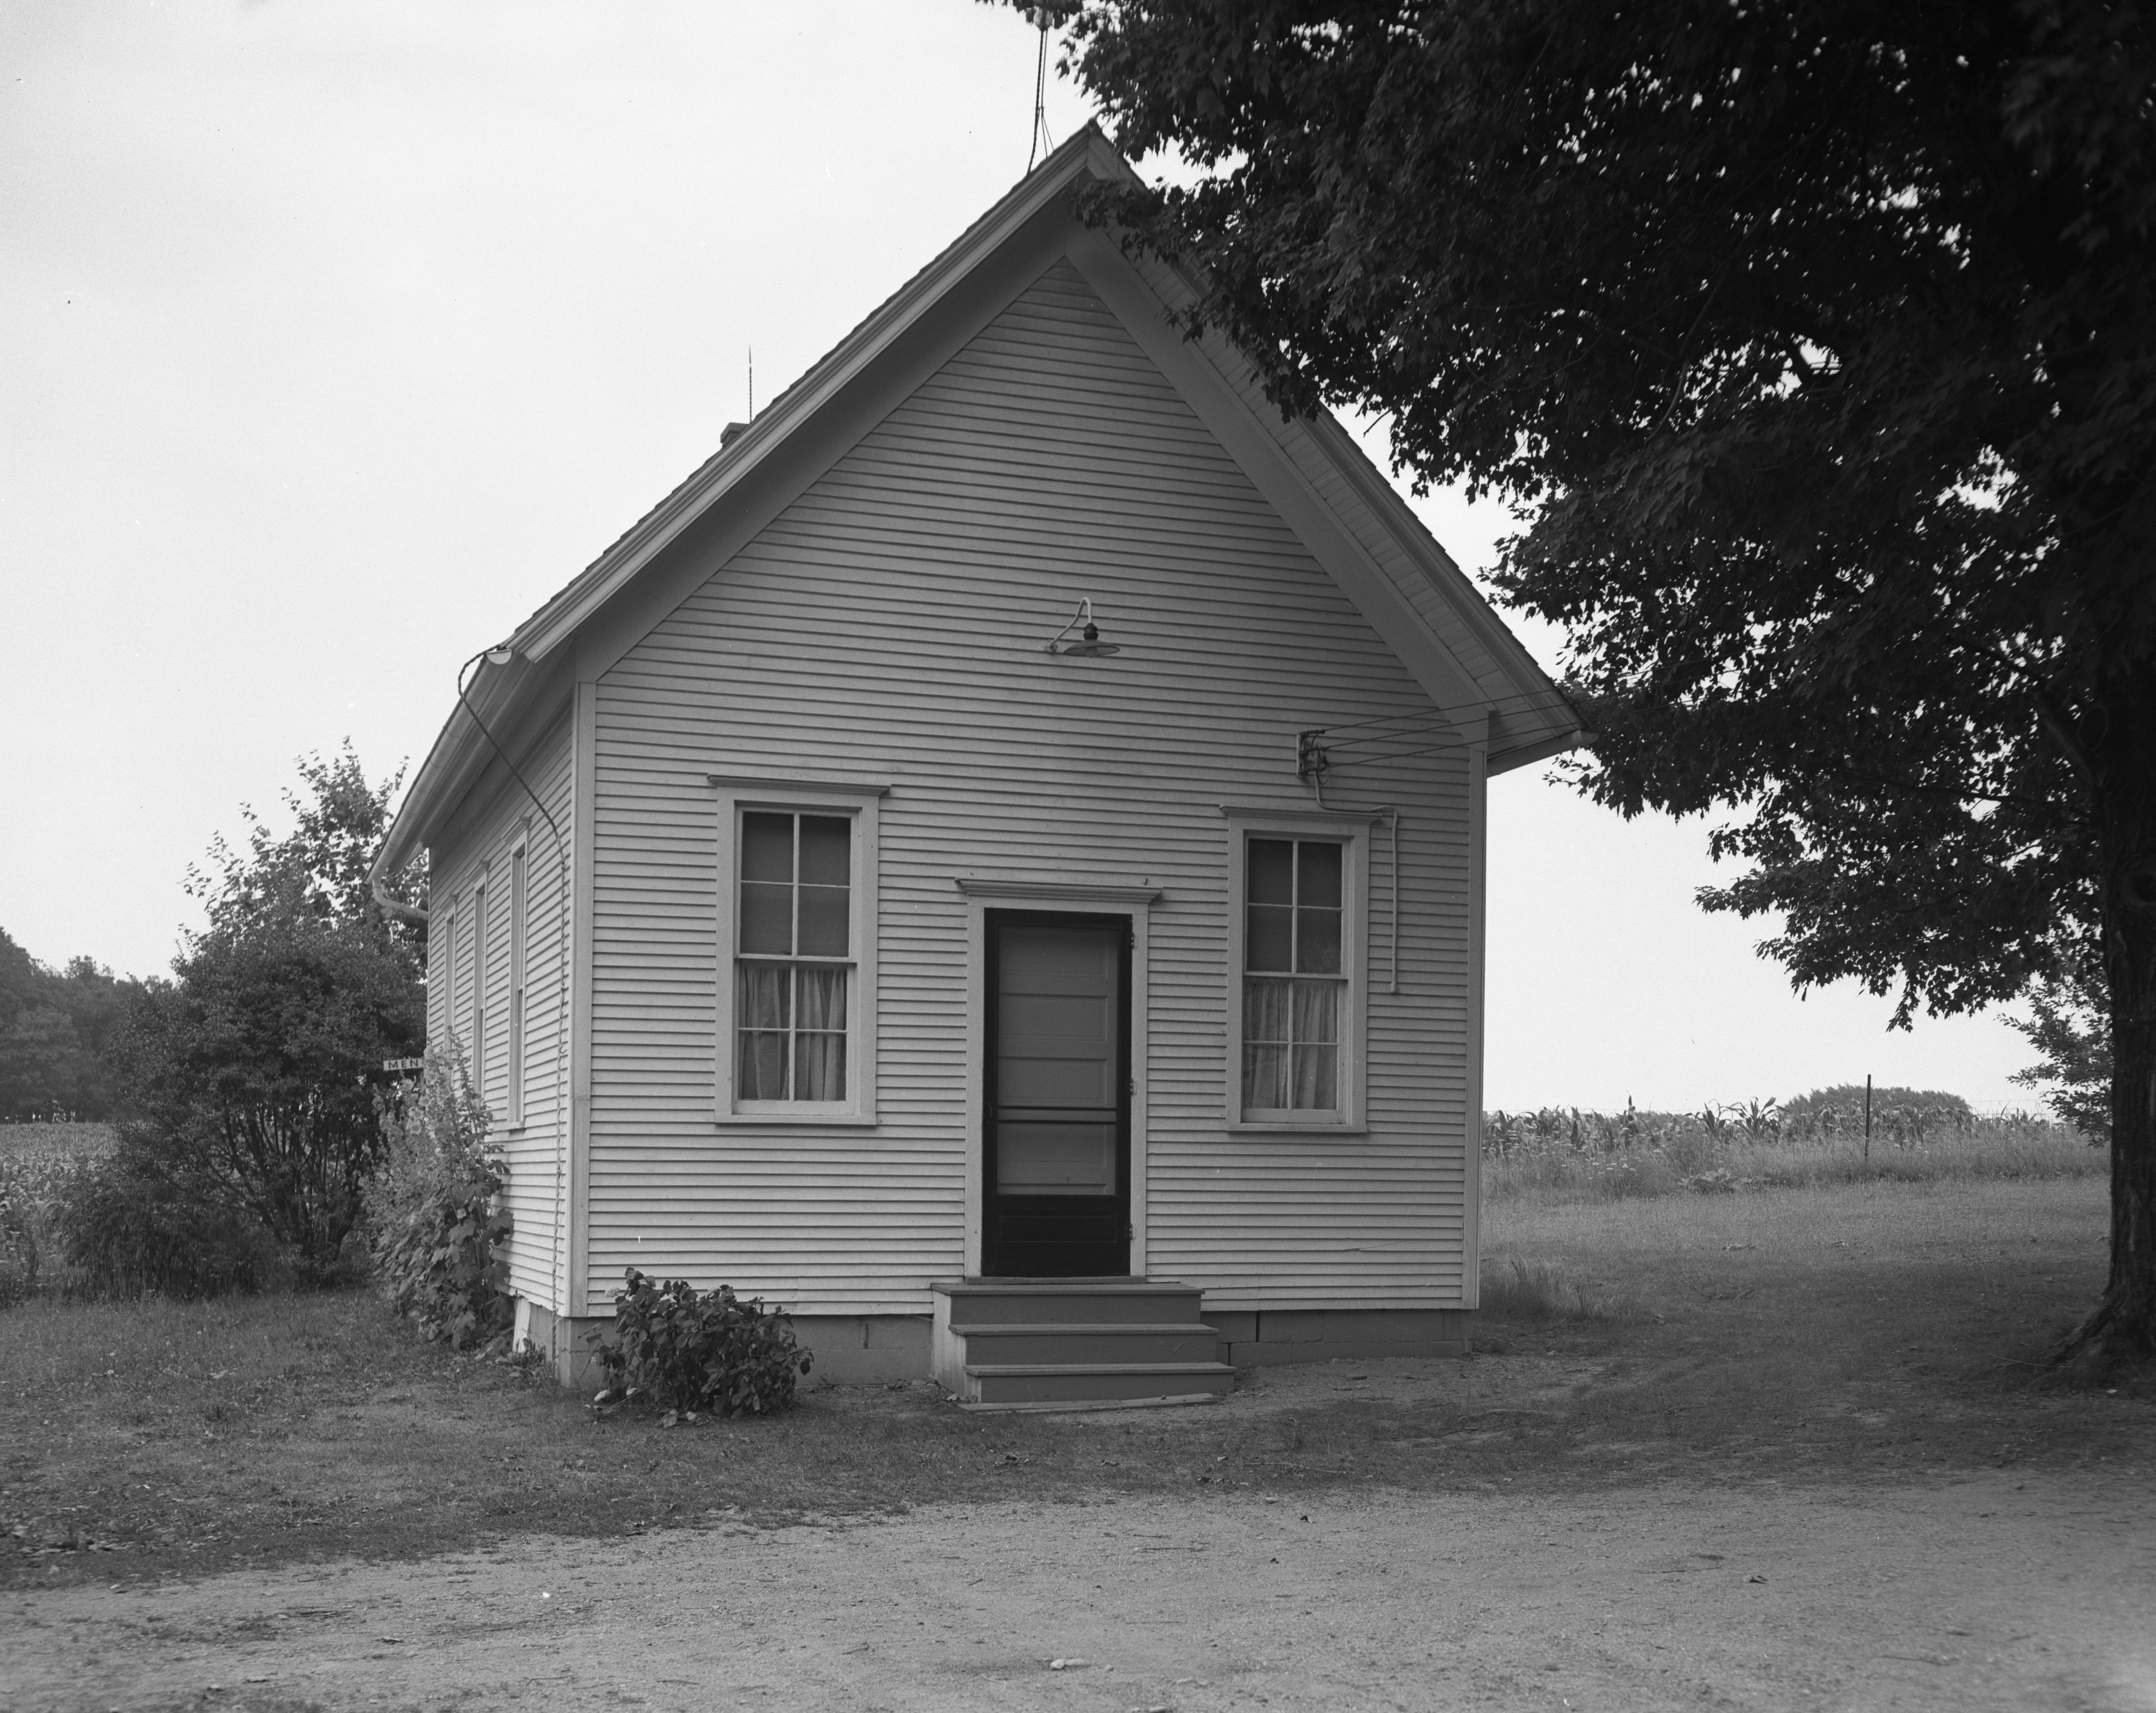 St. James Church on US 112 West of Saline, July 1952 image